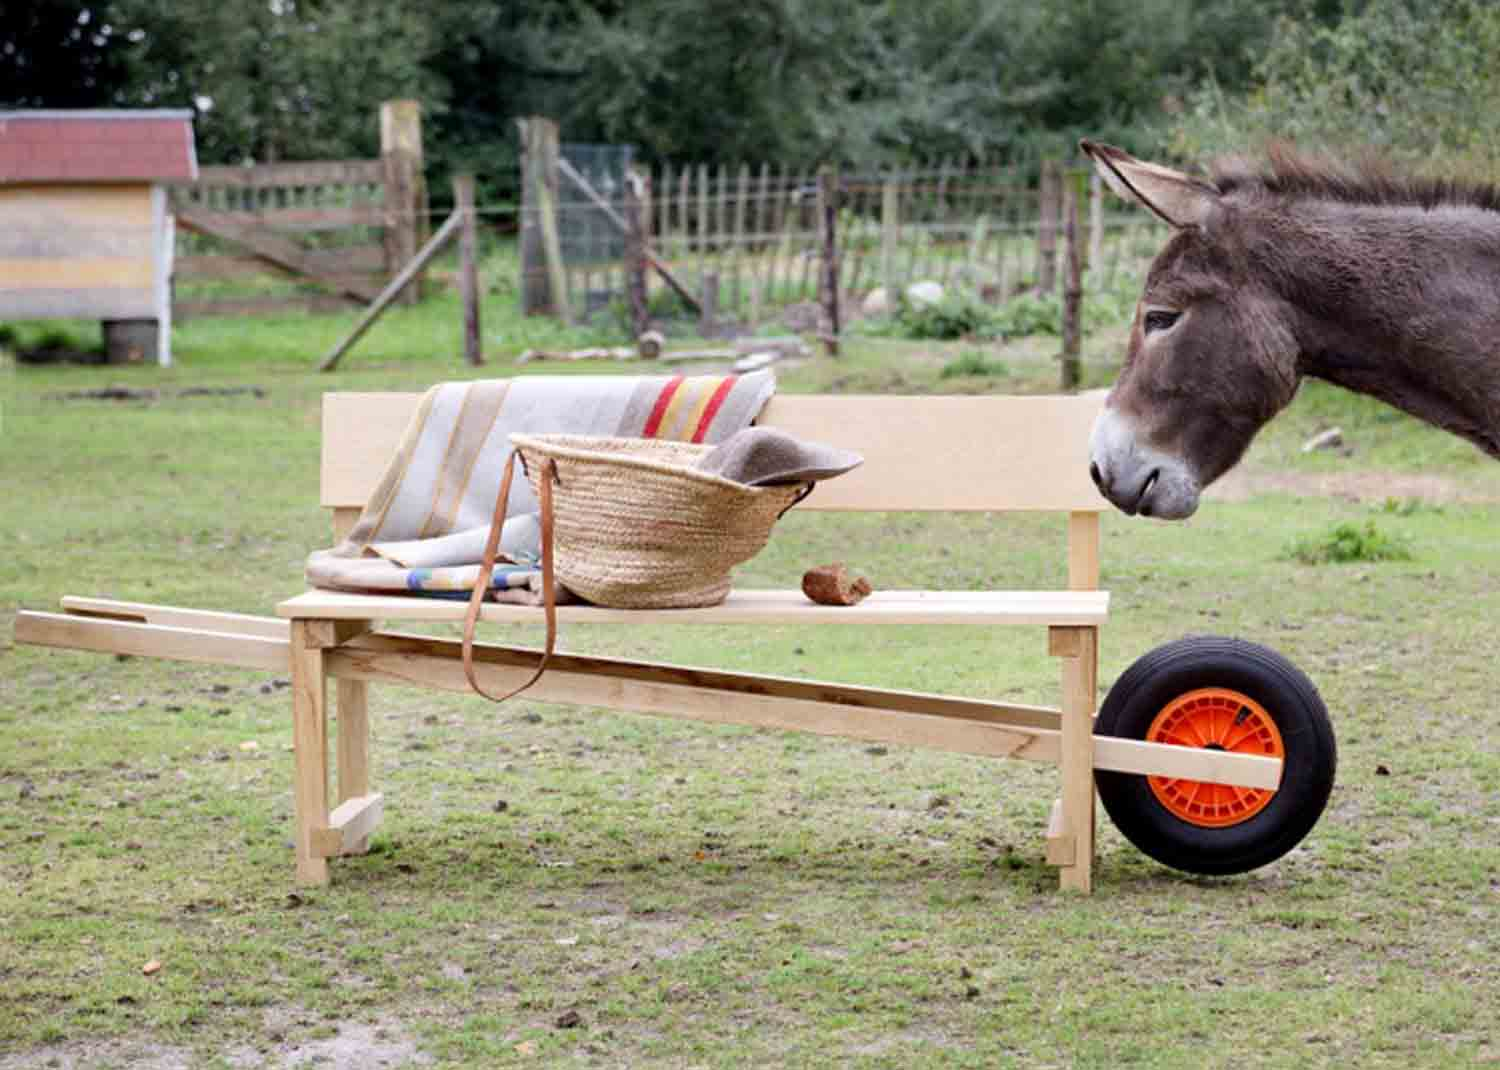 wheelbench_weltevree